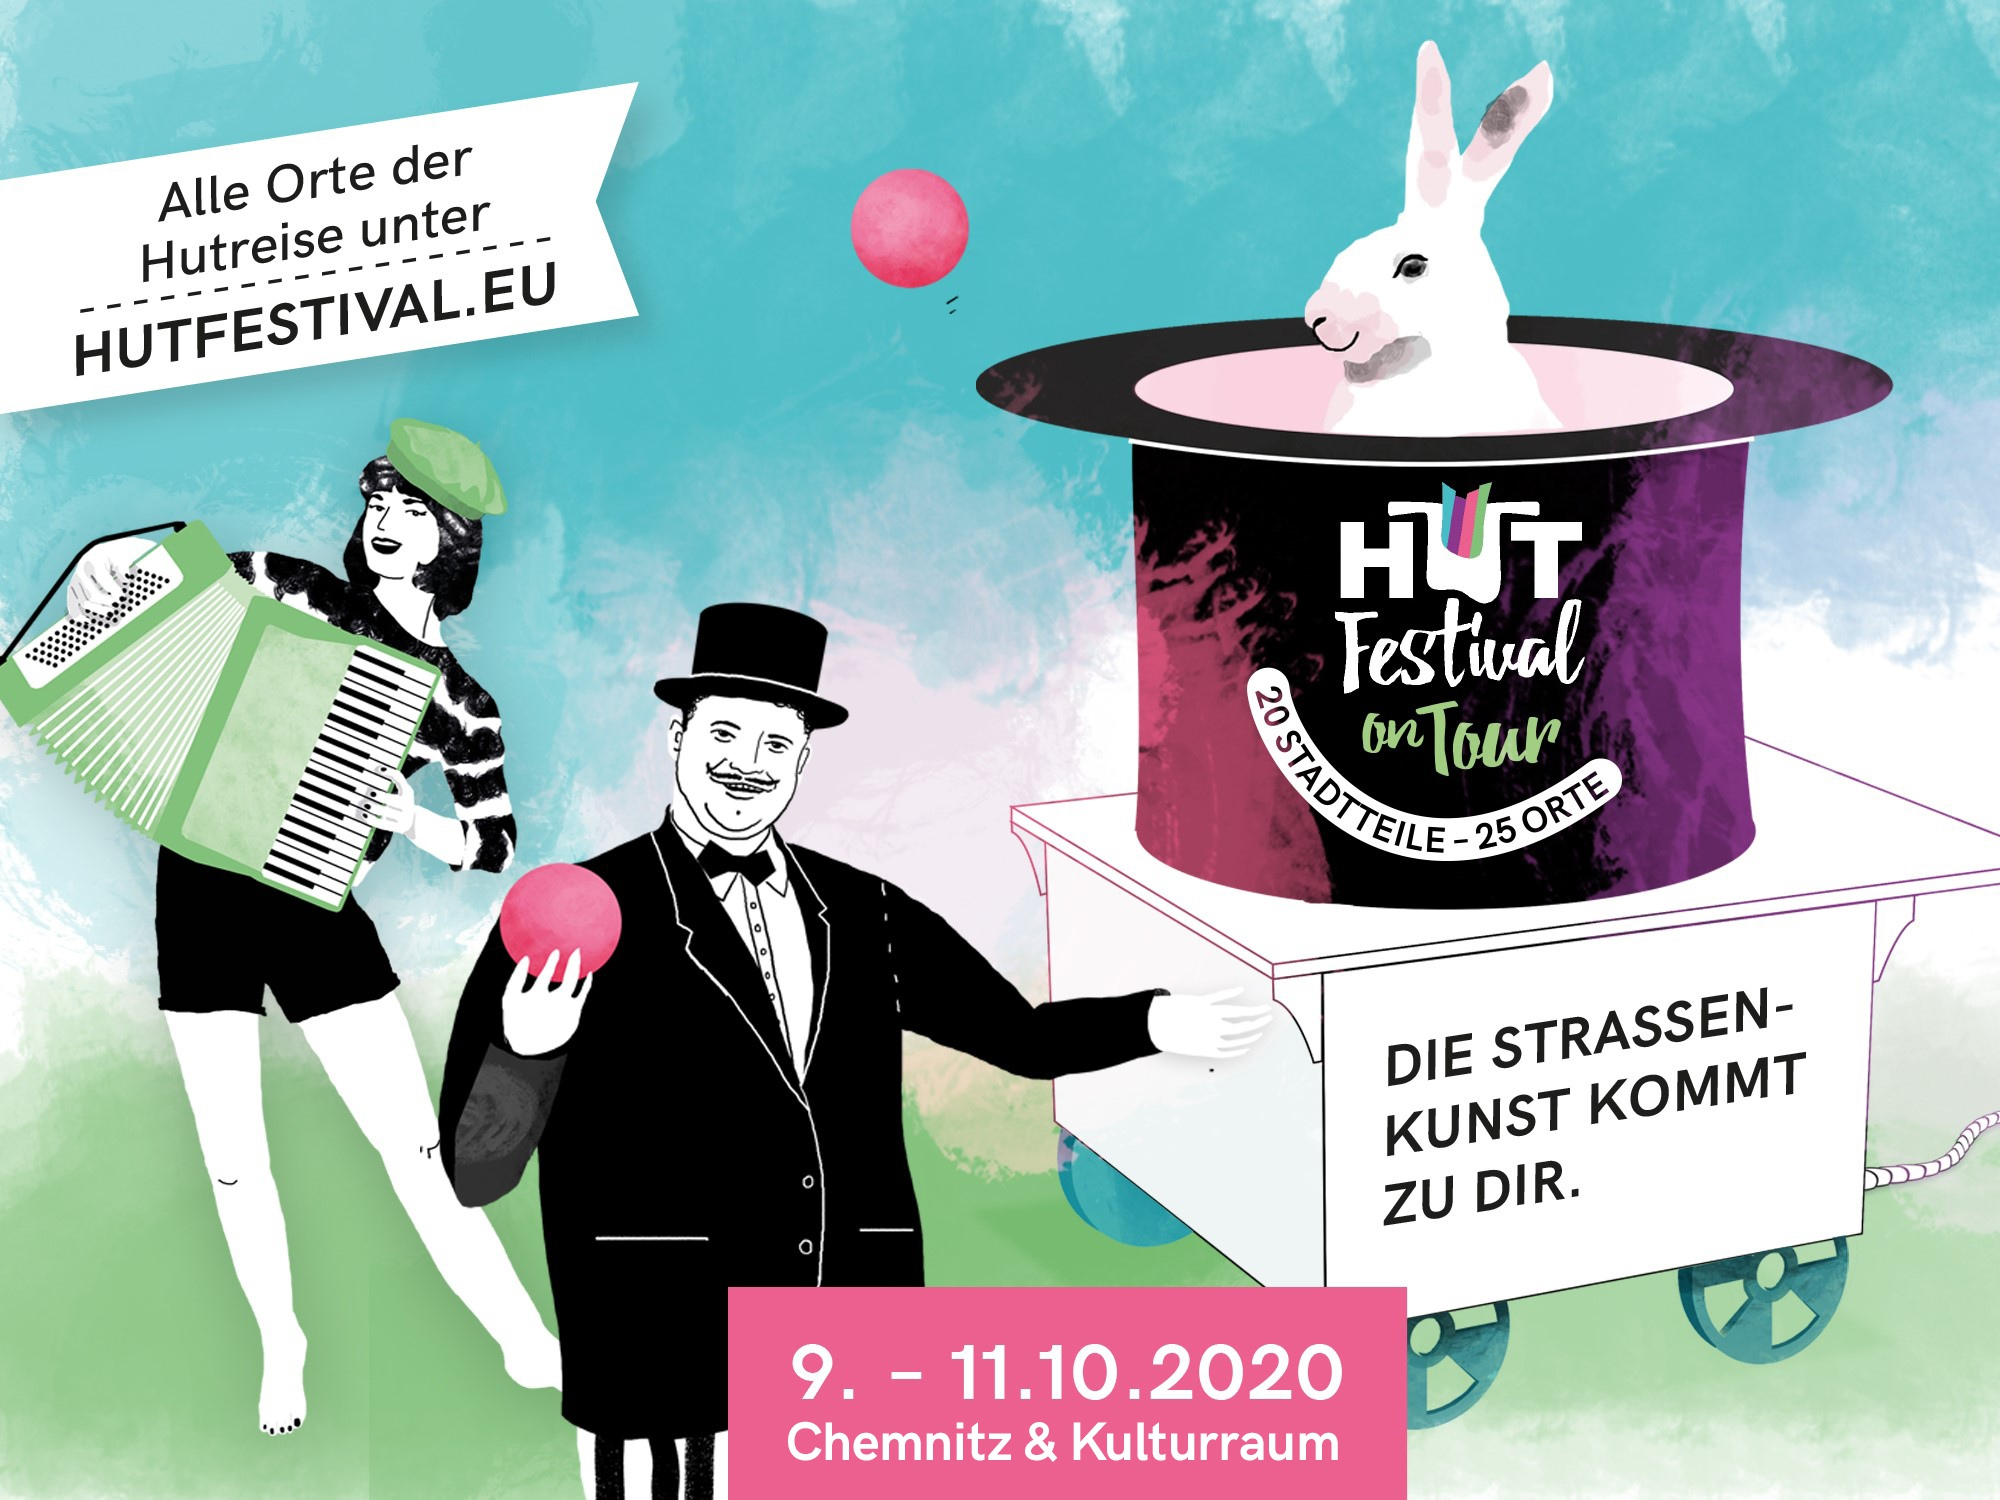 Hutfestival on Tour in Chemnitz und Kulturraum